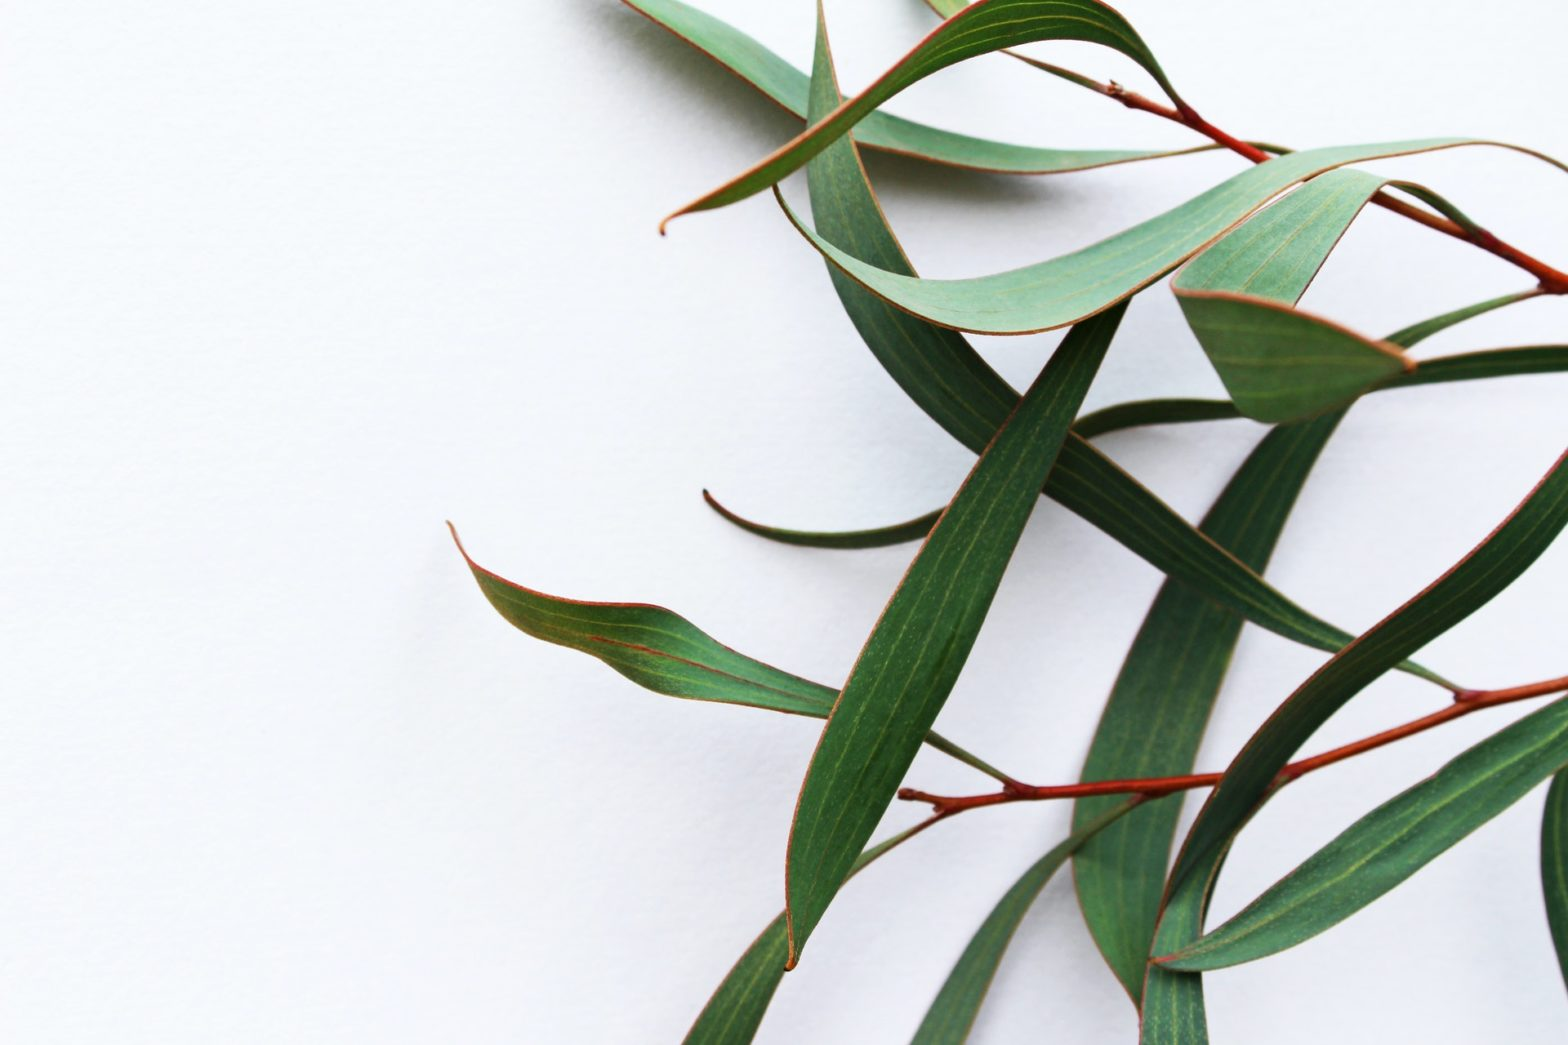 Botanic Protect tick repellent is derived from eucalyptus trees